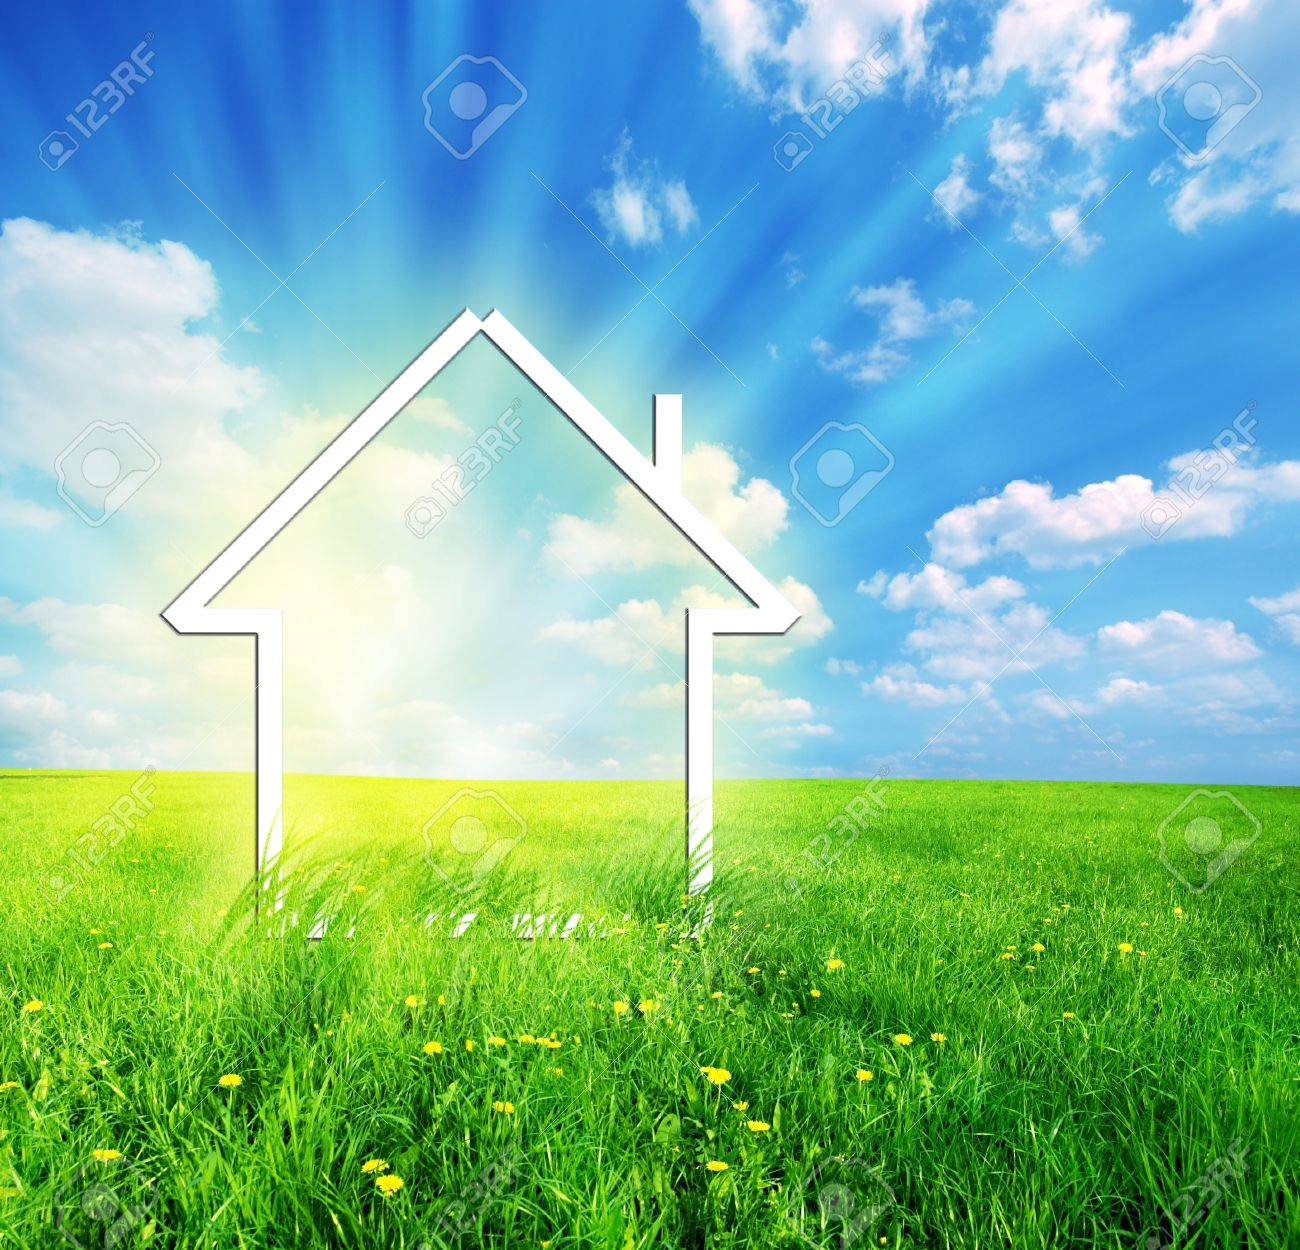 New house imagination vision on green meadow. Conceptual image Stock Photo - 4415879